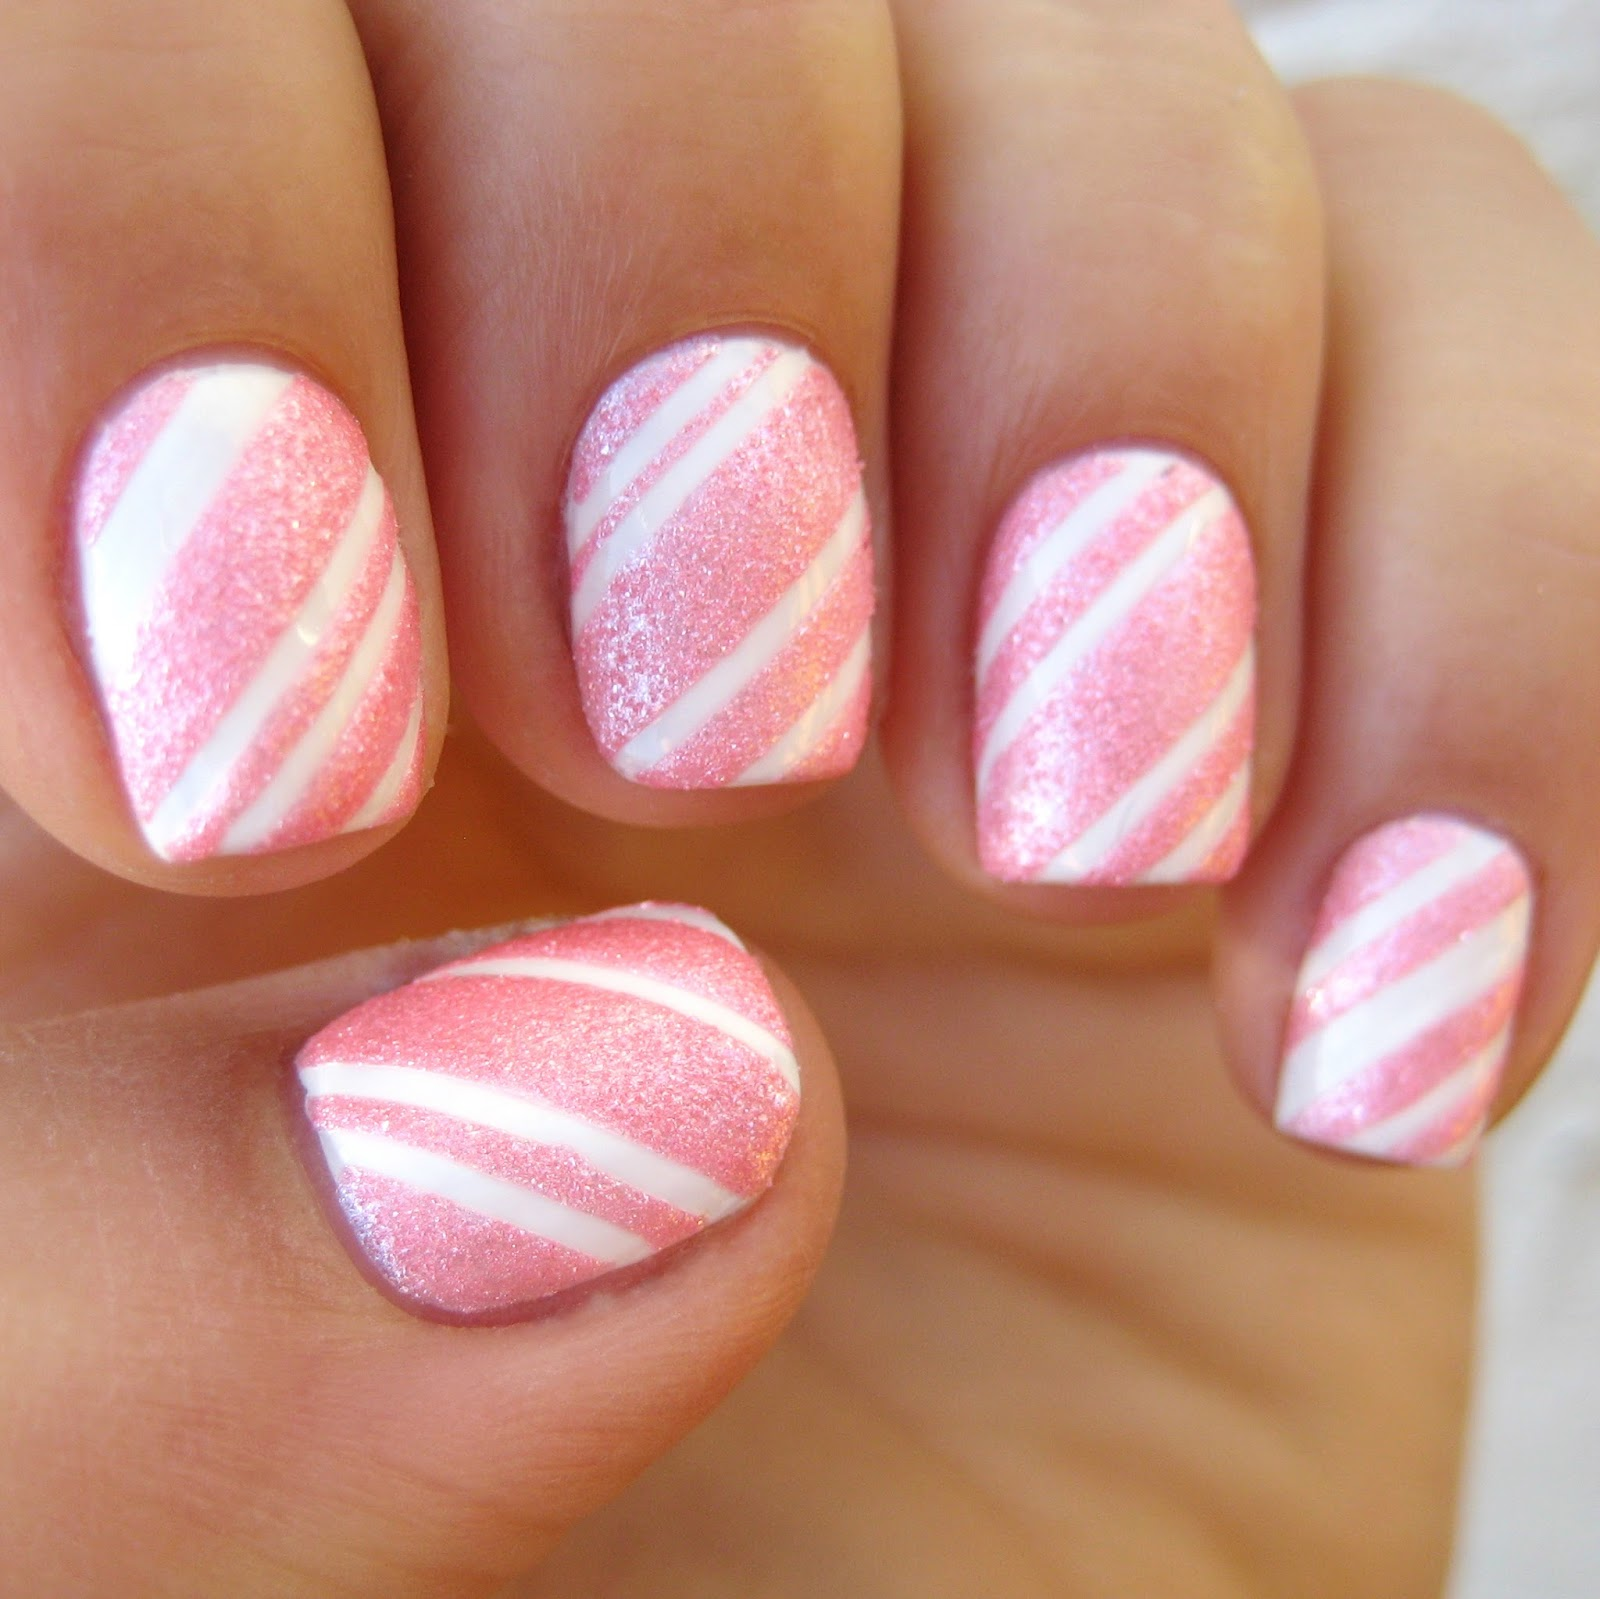 Dahlia Nails Candyfloss Candy Canes